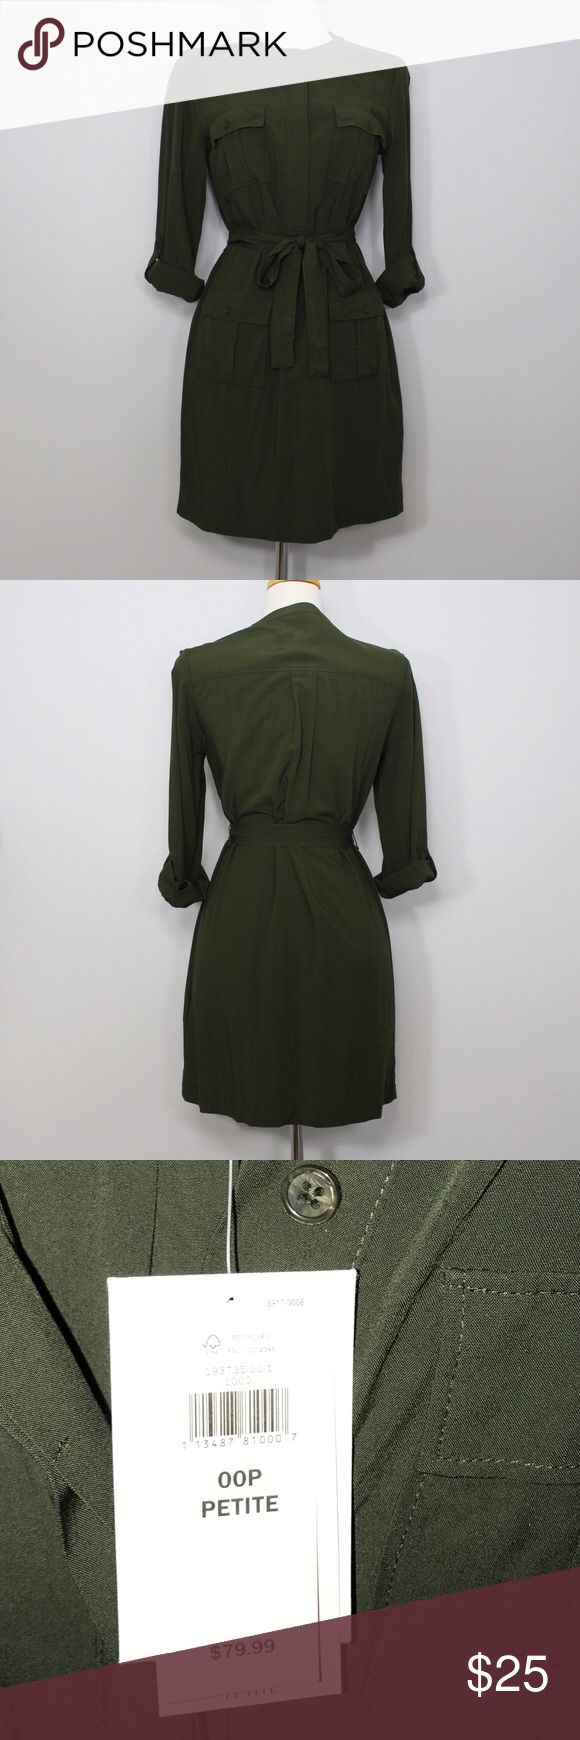 👗💋Banana republic Forest Green T-shirt dress 00P 👗💋Banana republic Forest Green T-shirt dress 00P💋👗 only tried on a few times. Never worn. Tags still on. Retails $79.99. Changing sizes so sadly selling my 00's. belt missing! Sorry. I can't find it. Think since the material is soft it slipped off the hanger during my move. Banana Republic Dresses Midi